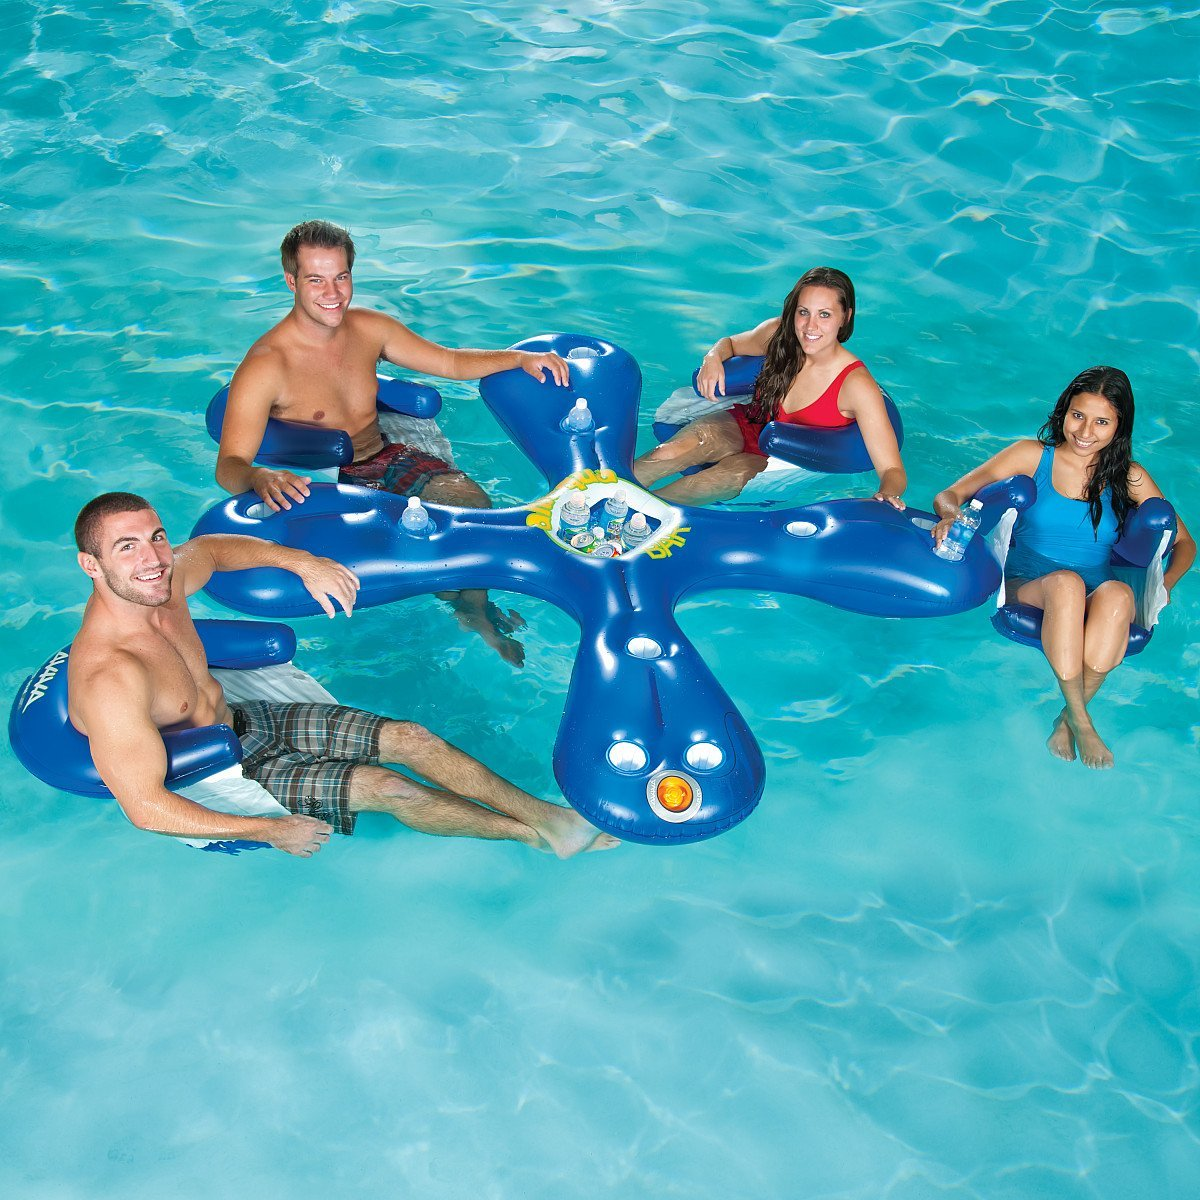 17 of the most ridiculously awesome summer pool floats for Accessoire piscine intex